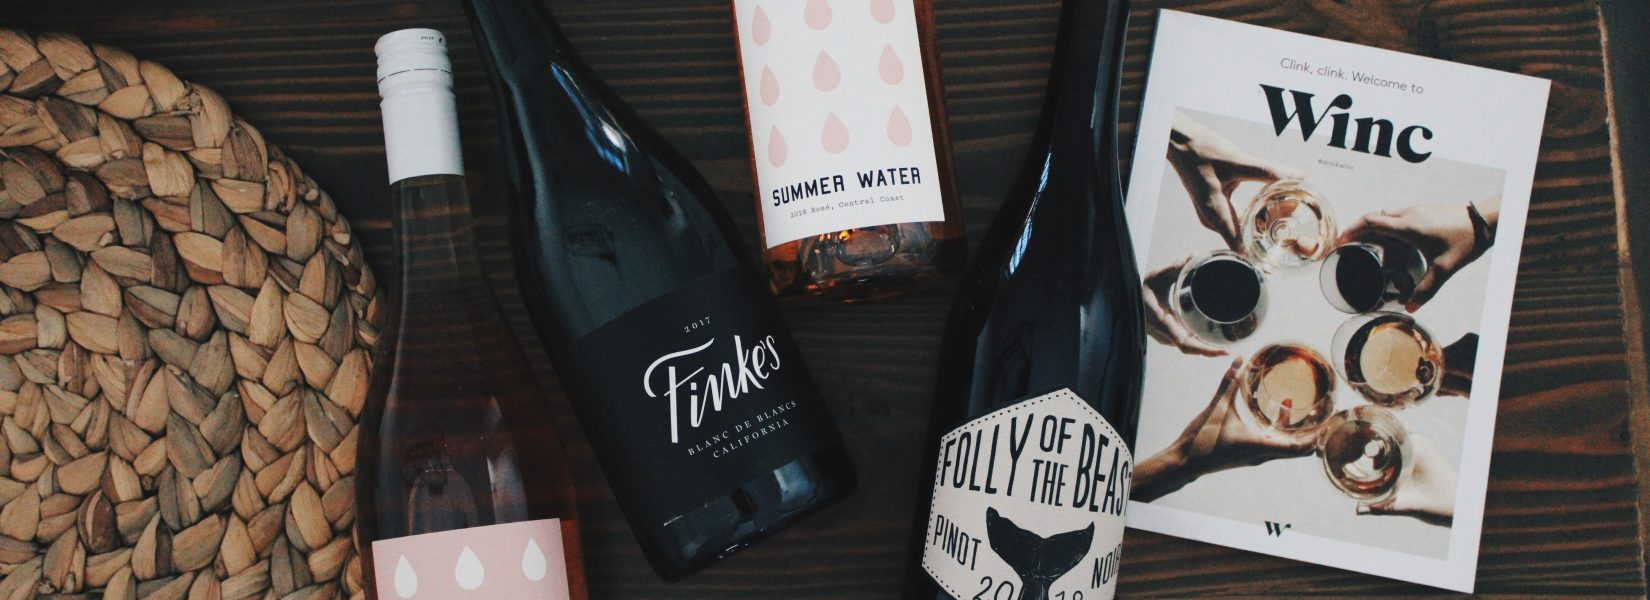 WINC Wine – Special Code to Get FOUR Bottles for $39!